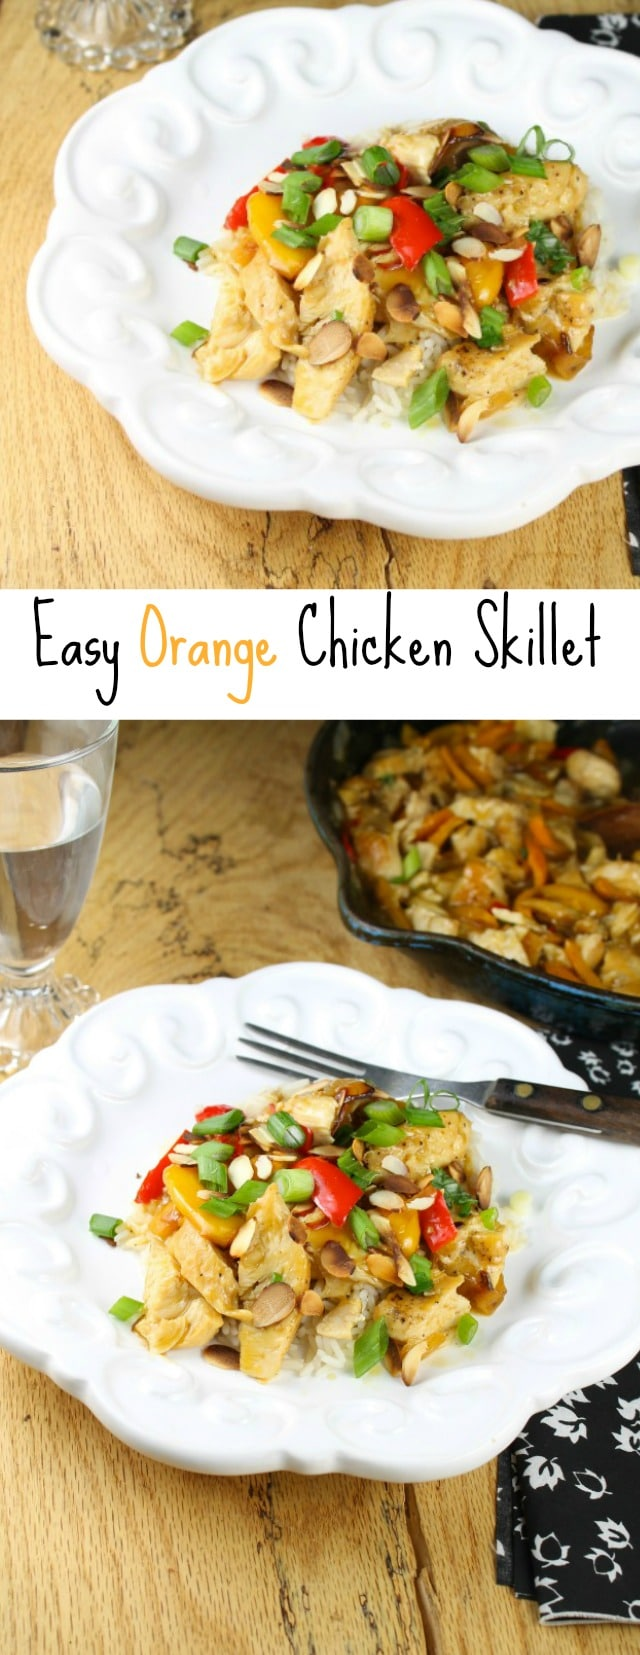 Easy Orange Chicken Skillet From missinthekitchen.com